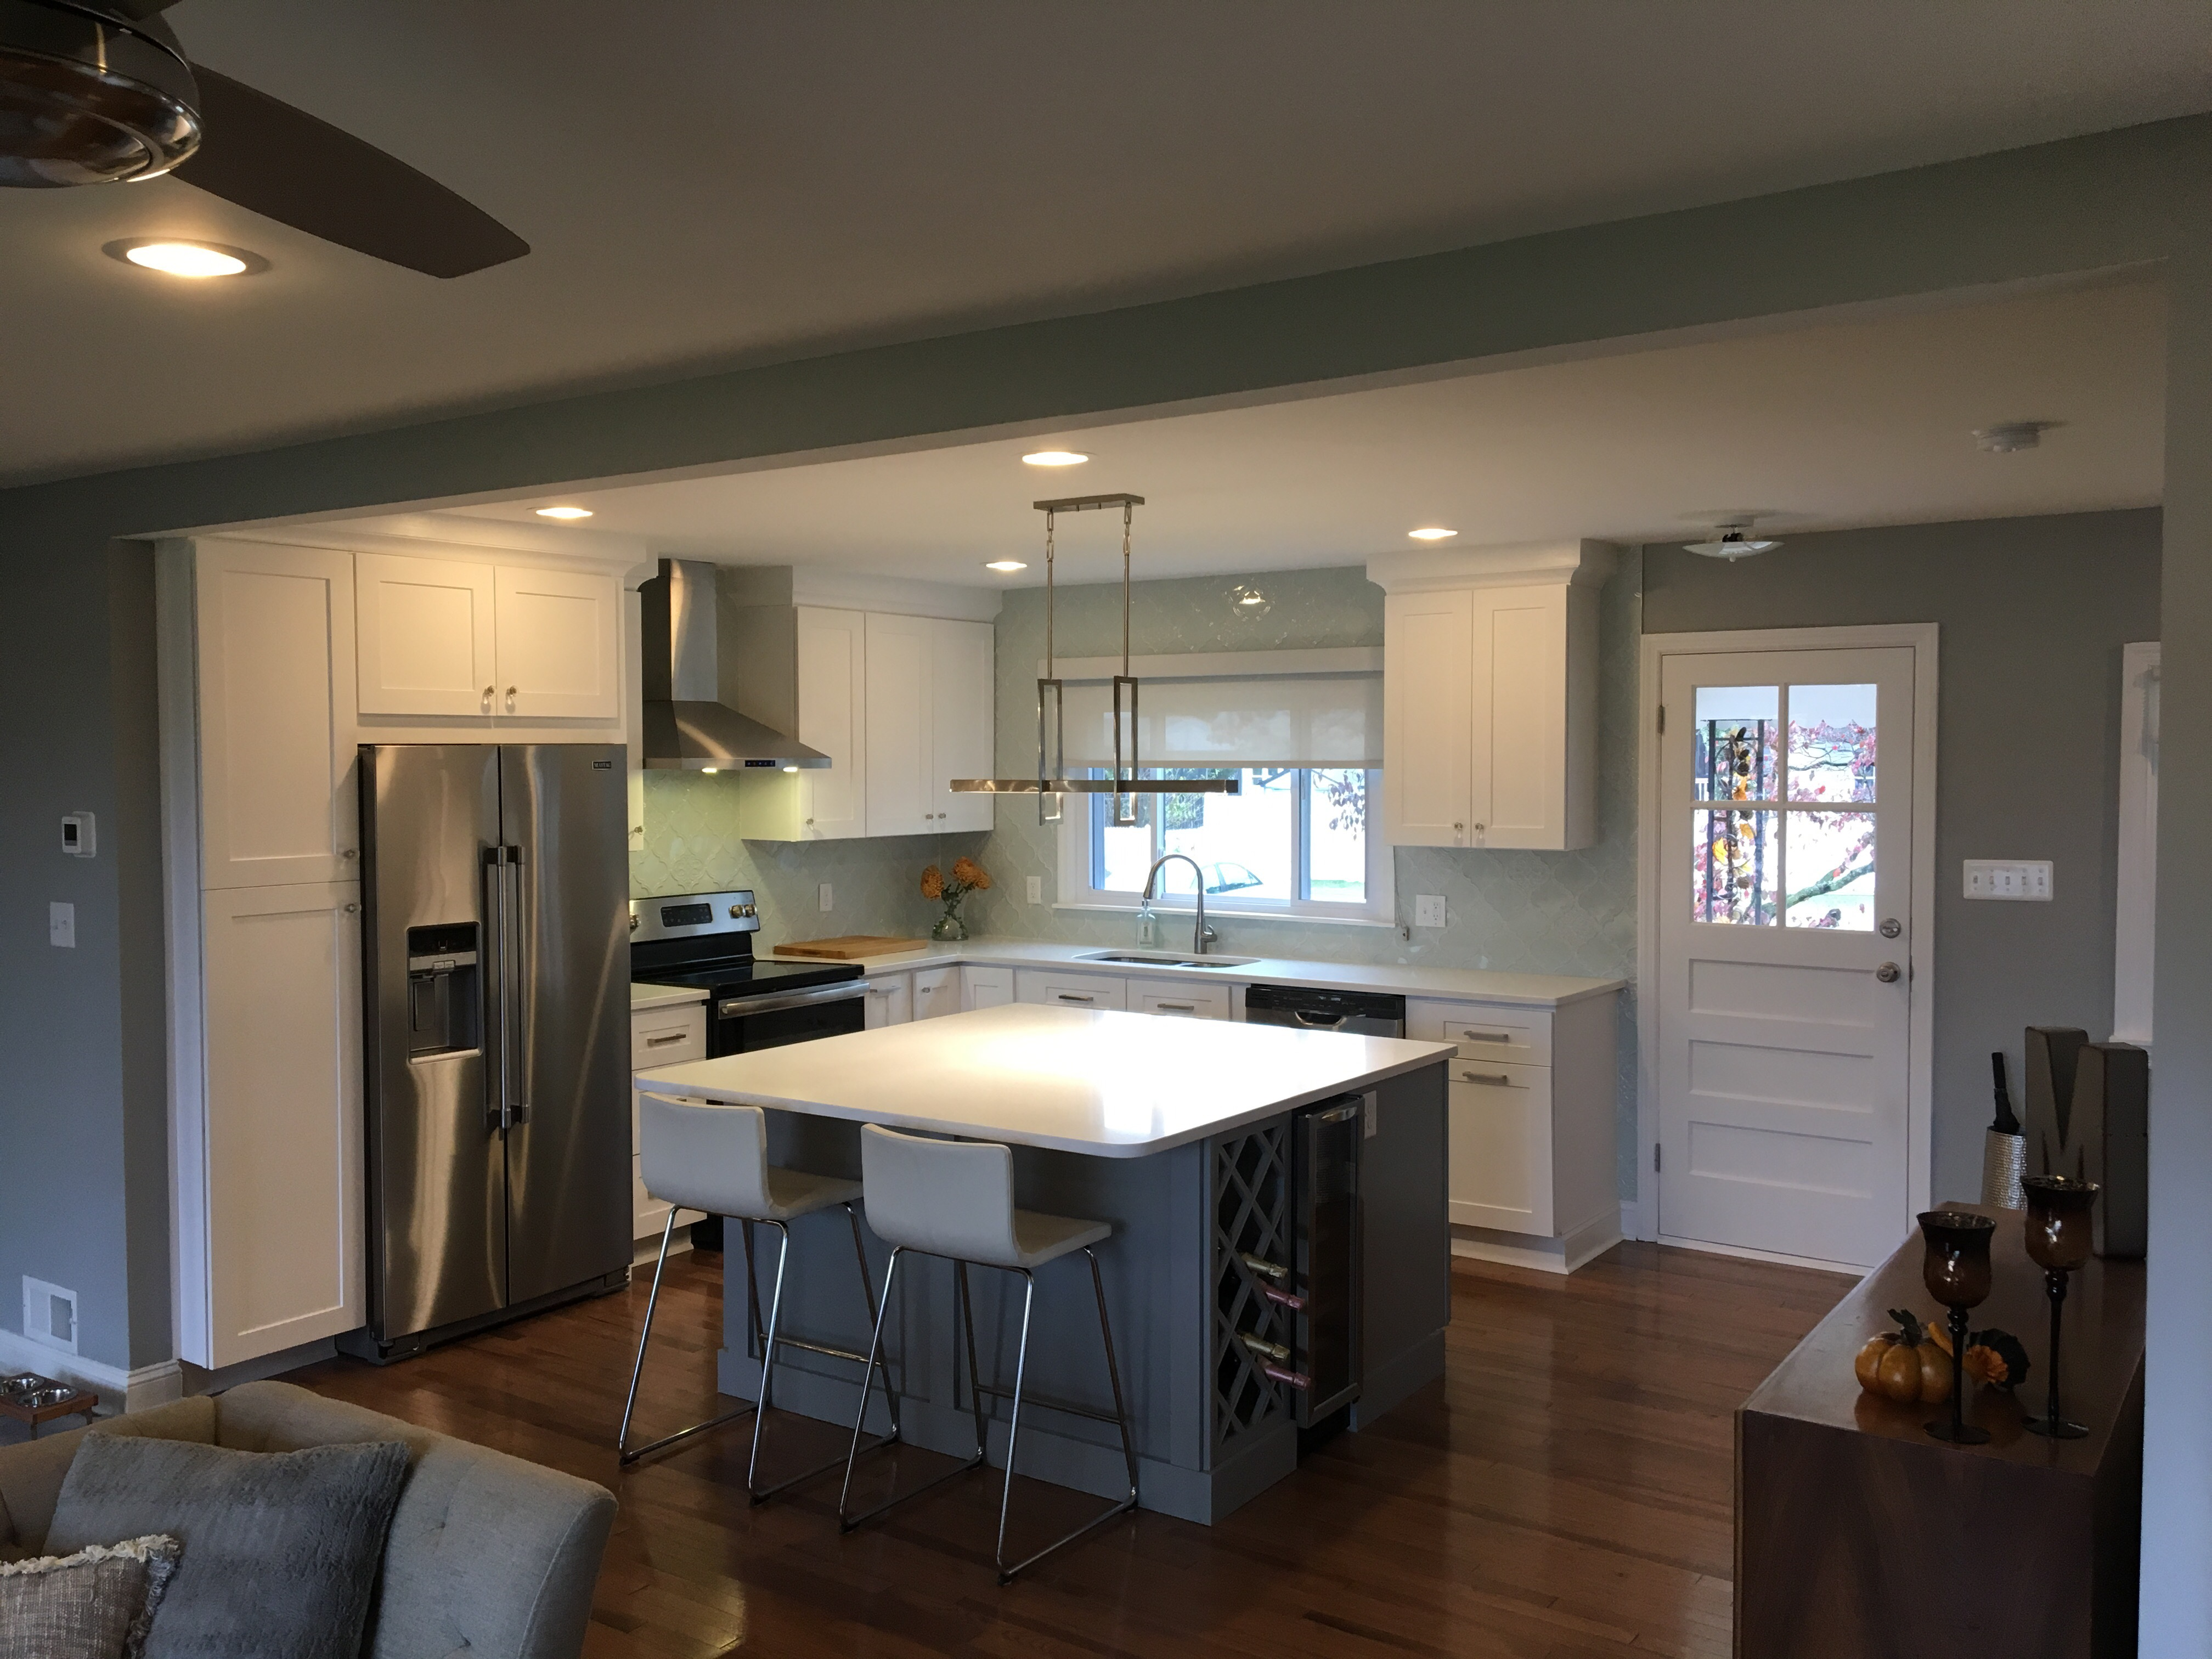 Oddly Enough, One Of My Favorite Features Of The Kitchen Is The Backsplash.  We Went SUPER White Modern (?) With All Of The Finishes.